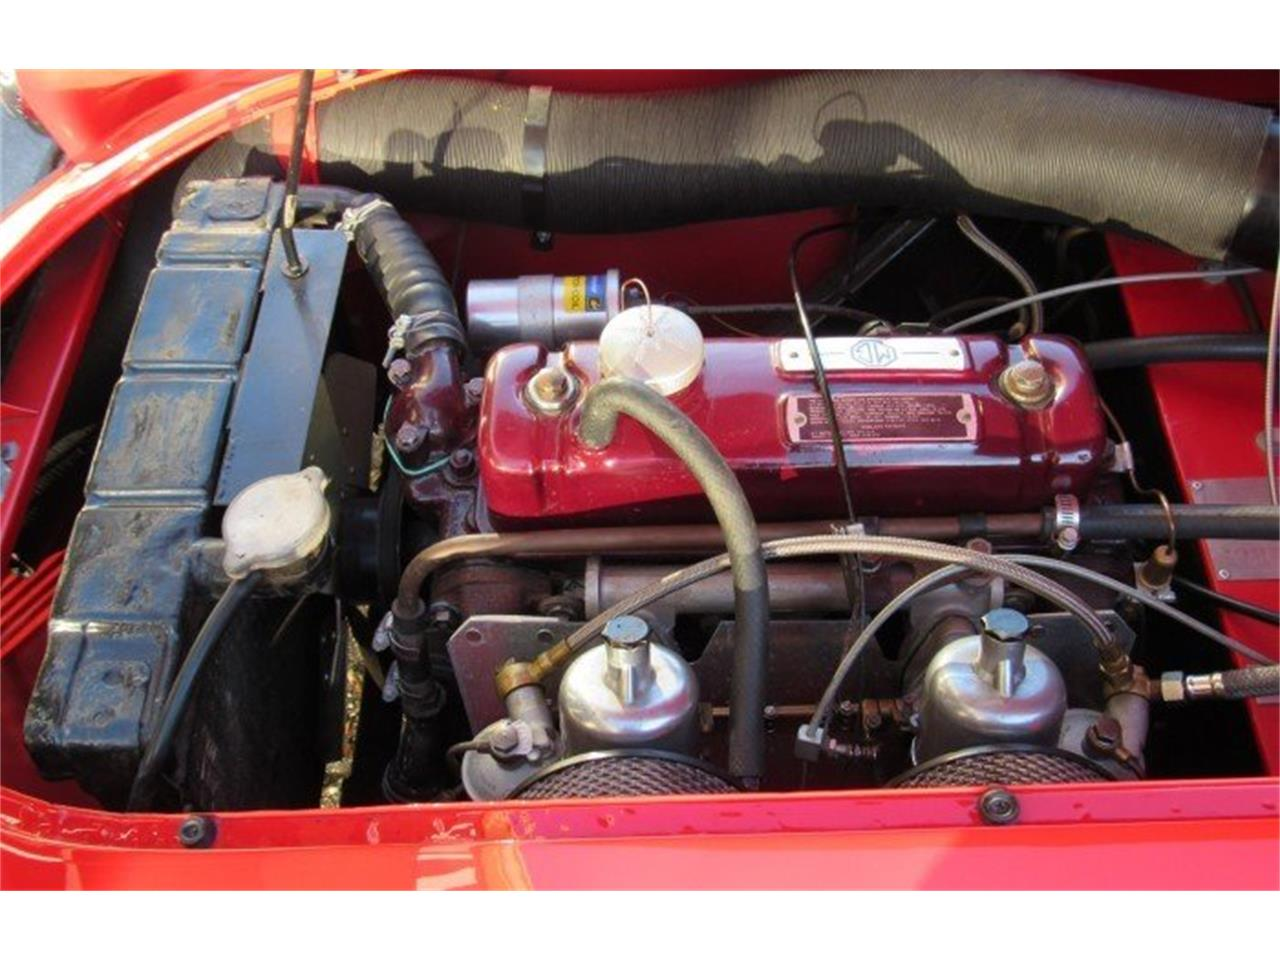 Large Picture of 1957 MGA located in Florida Auction Vehicle Offered by Premier Auction Group - PH10